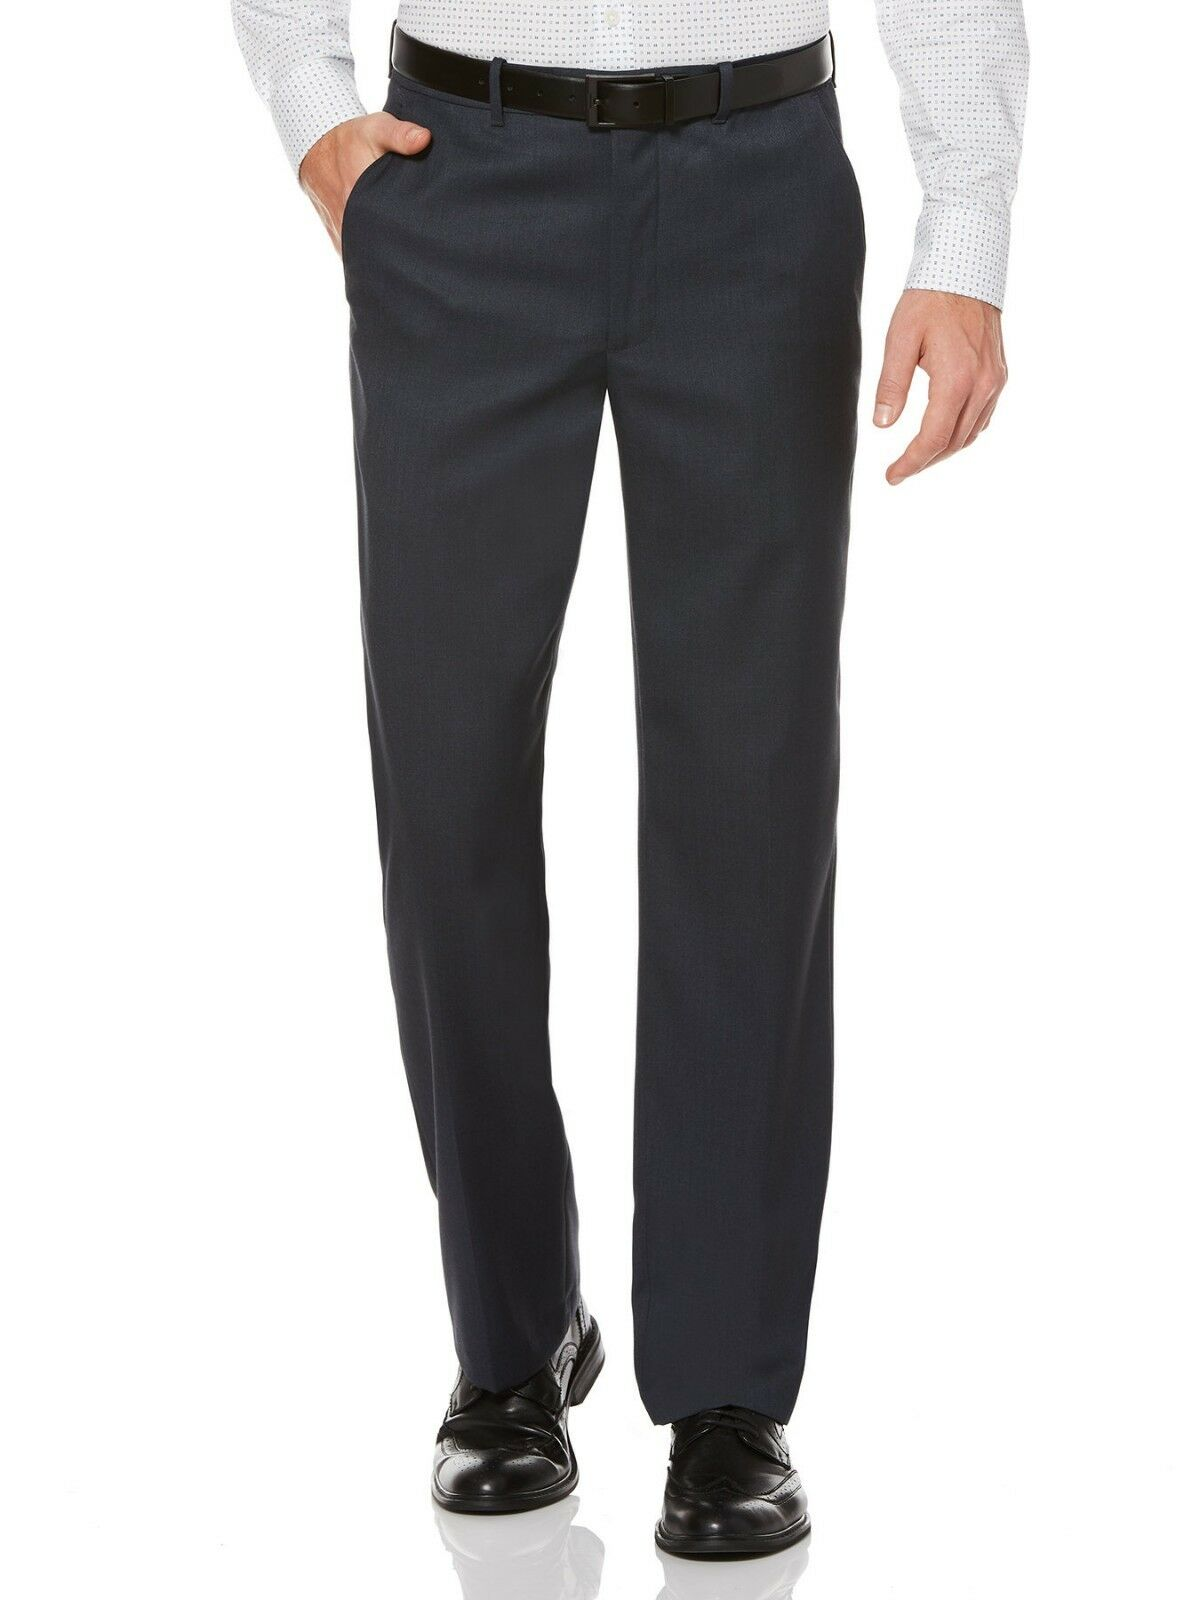 PERRY ELLIS PORTFOLIO men blueE FIT FLAT FRONT SUIT DRESS PANTS 44 W 30 L